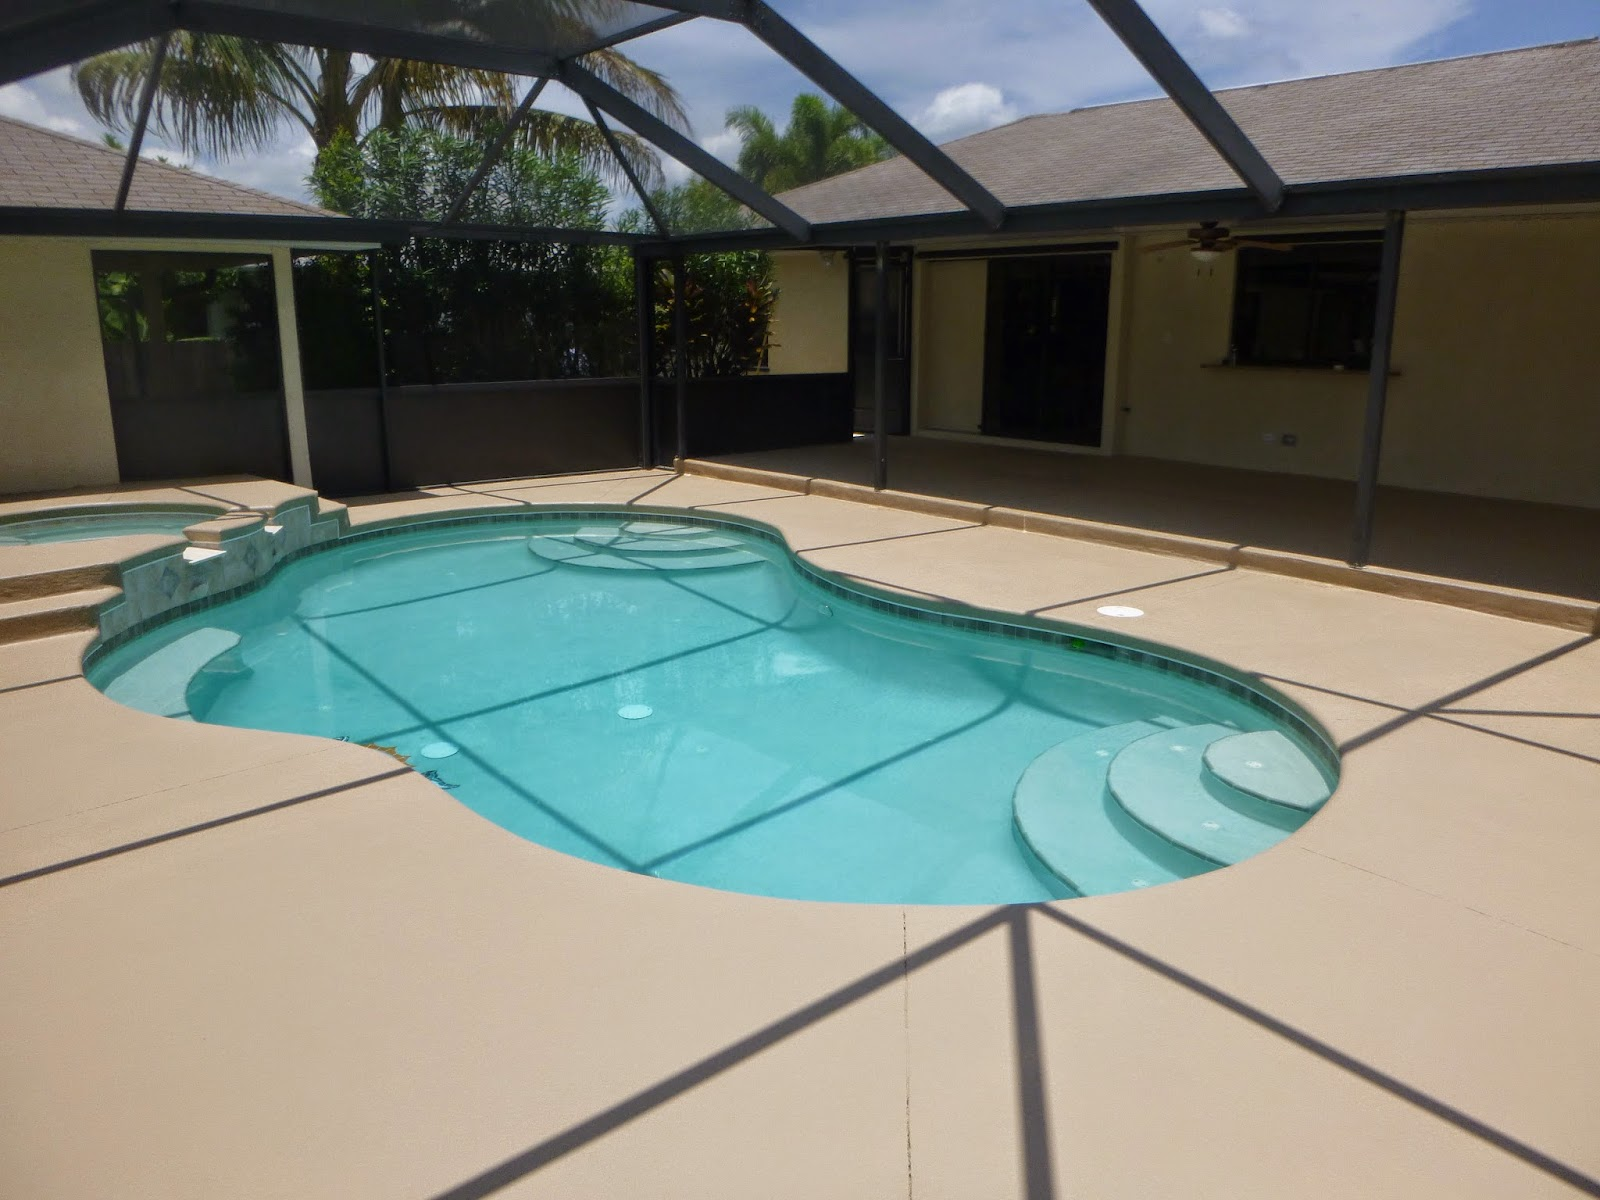 Painter Of Port St Lucie Florida 772 801 9711 Pool